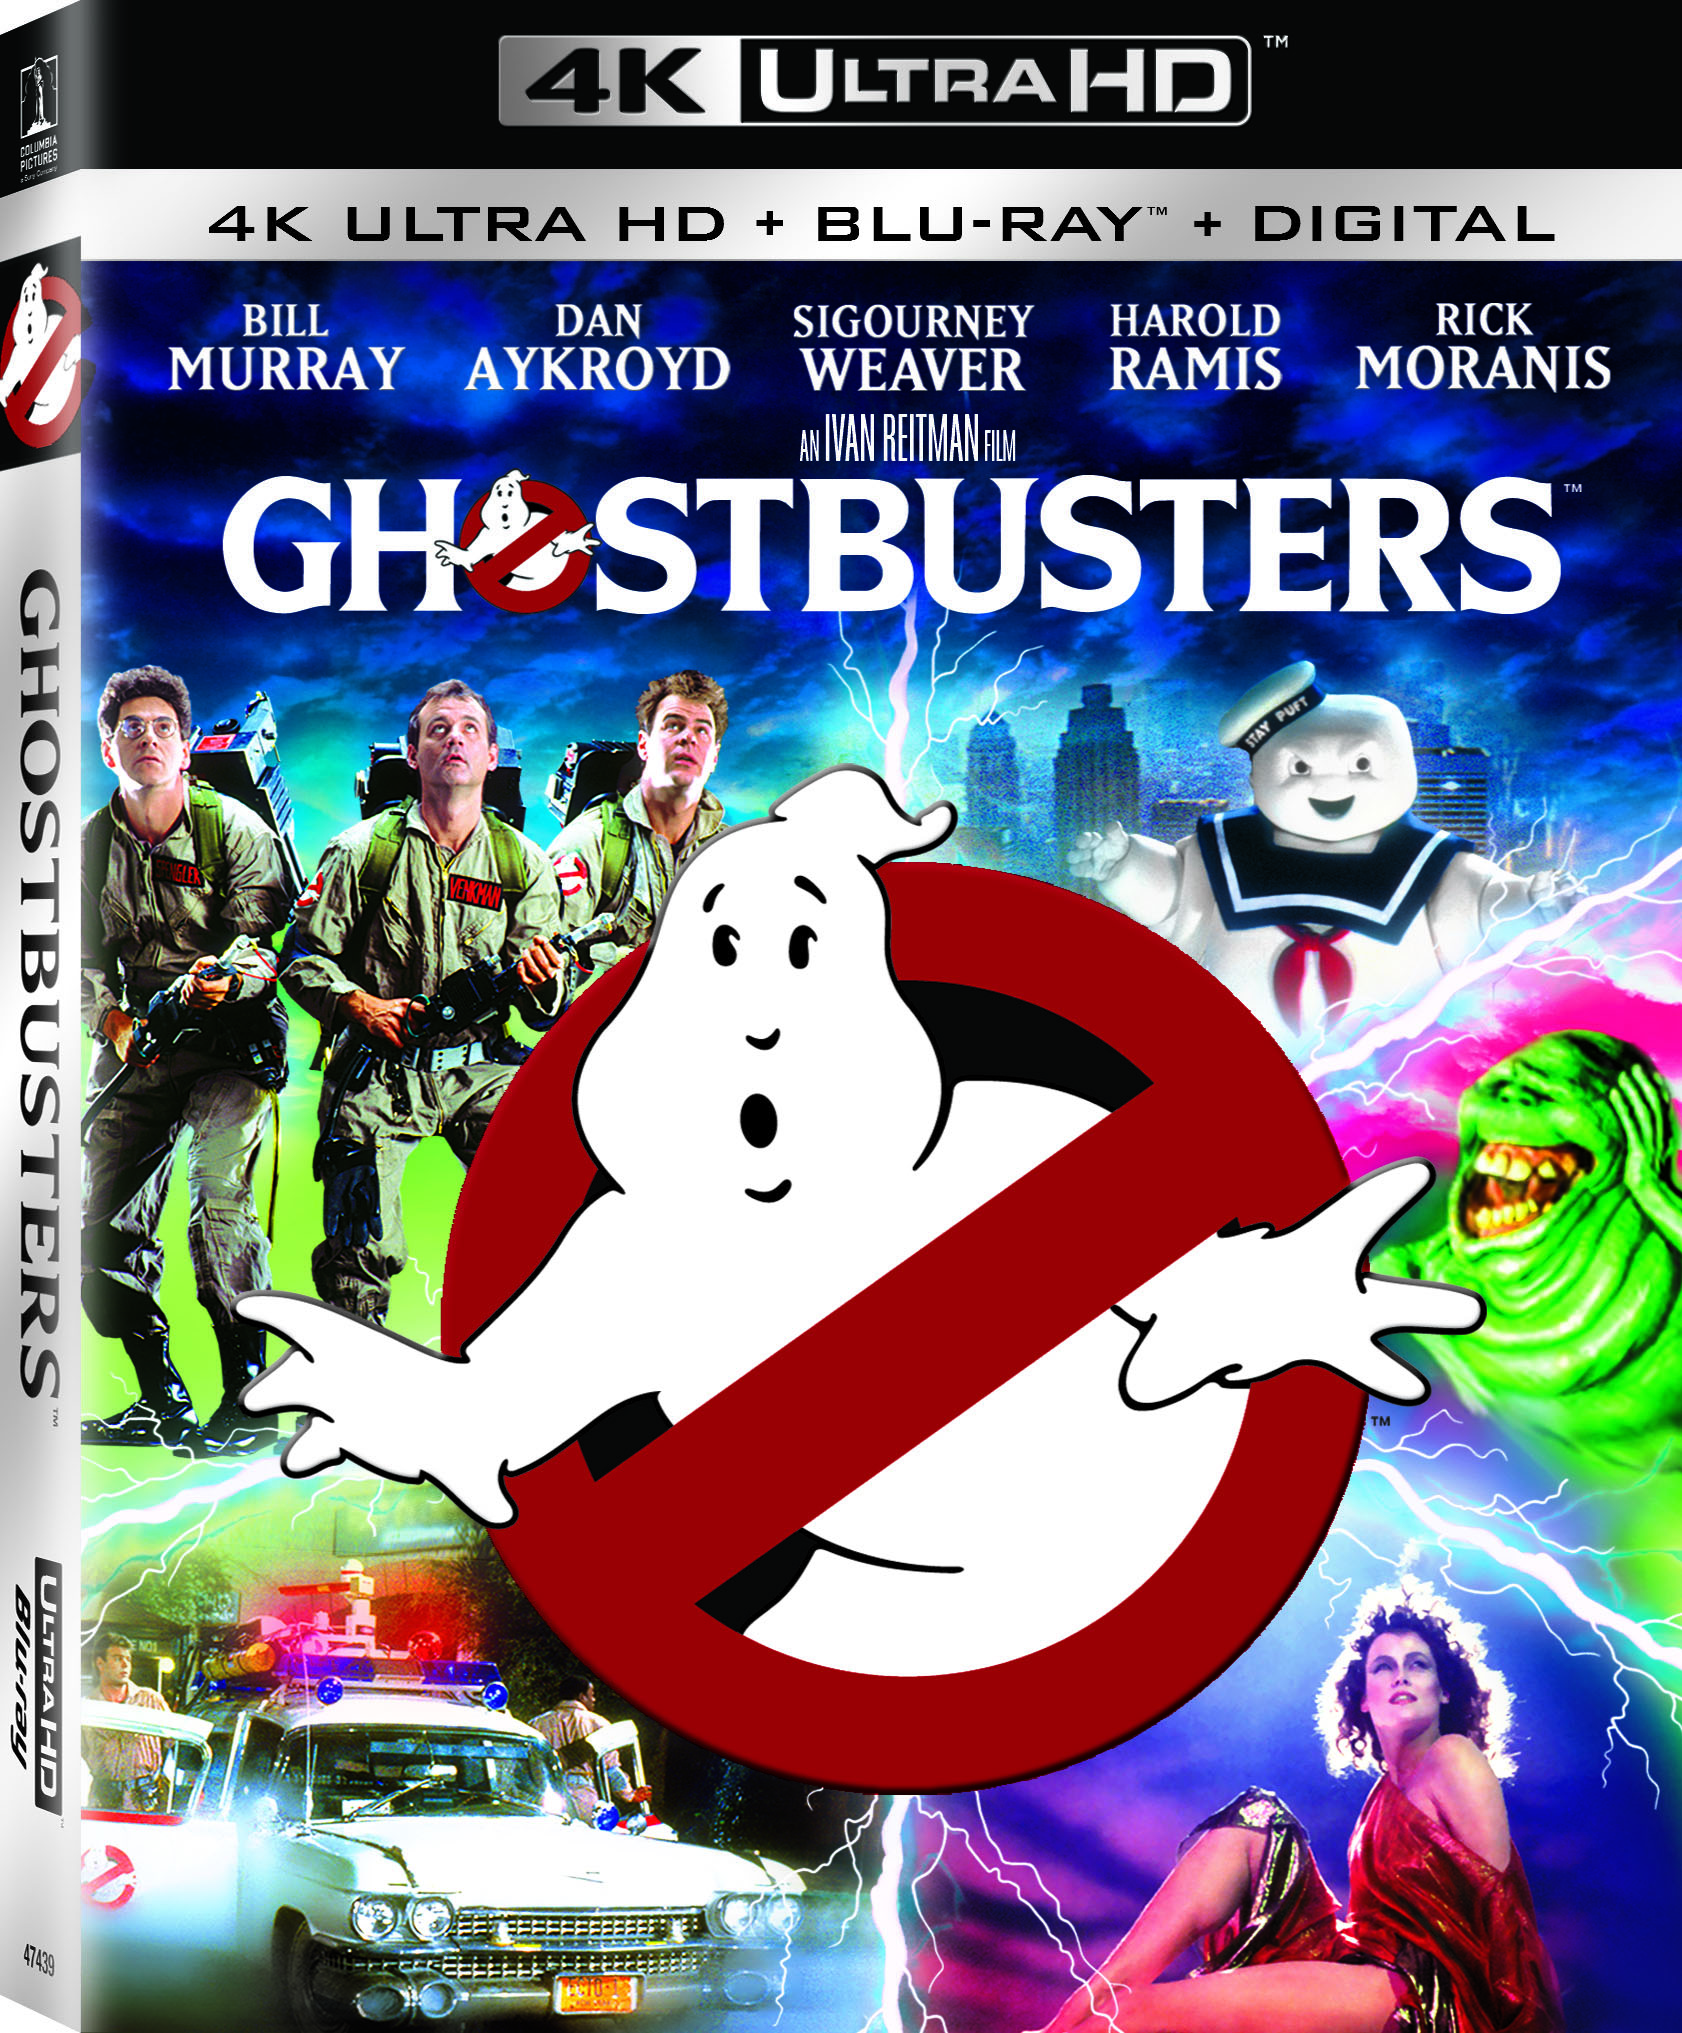 Ghostbusters and Ghostbusters II 4K UHD Review